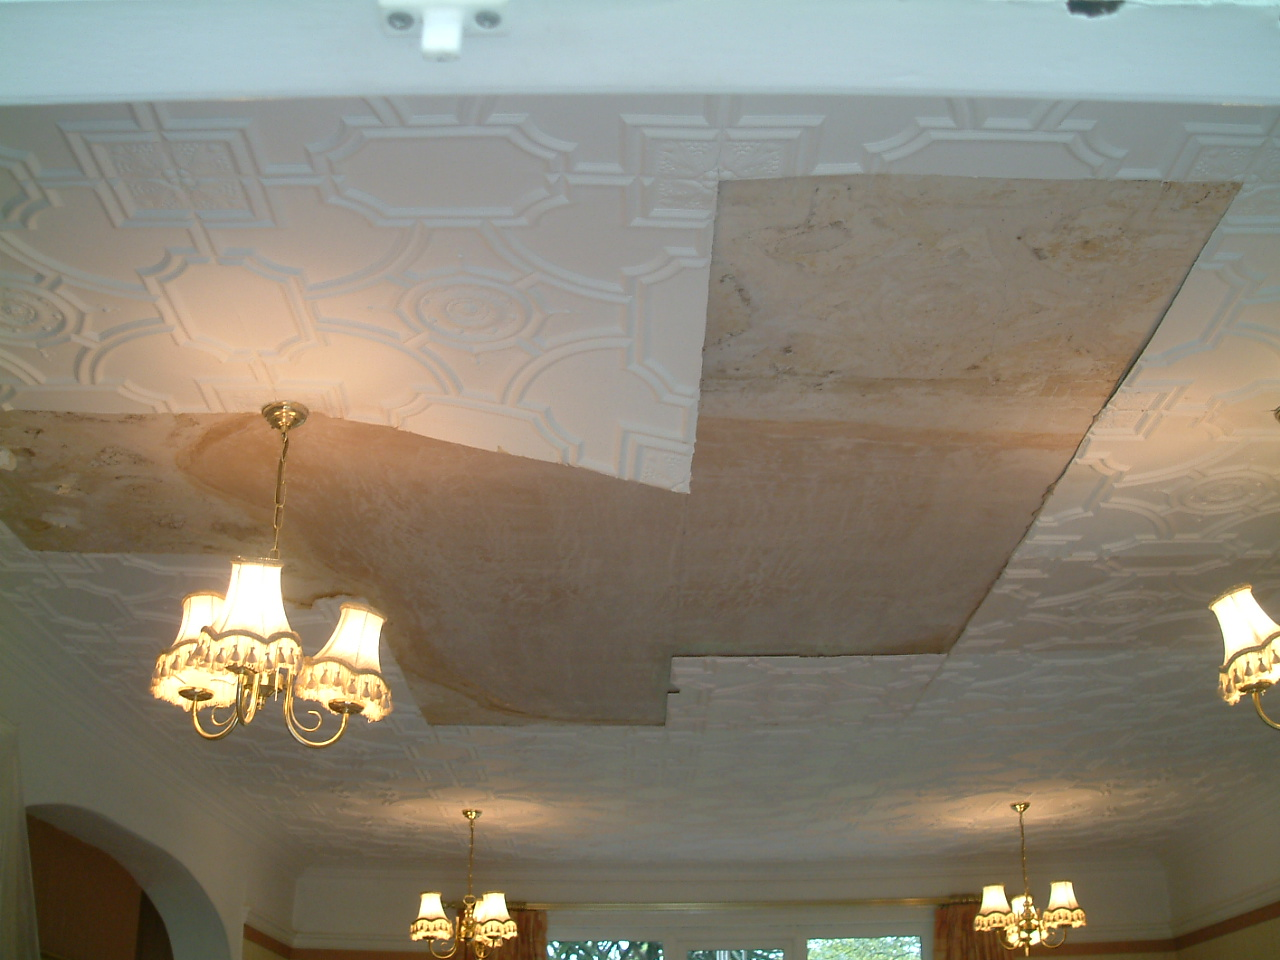 repaired cieling afer flood damage